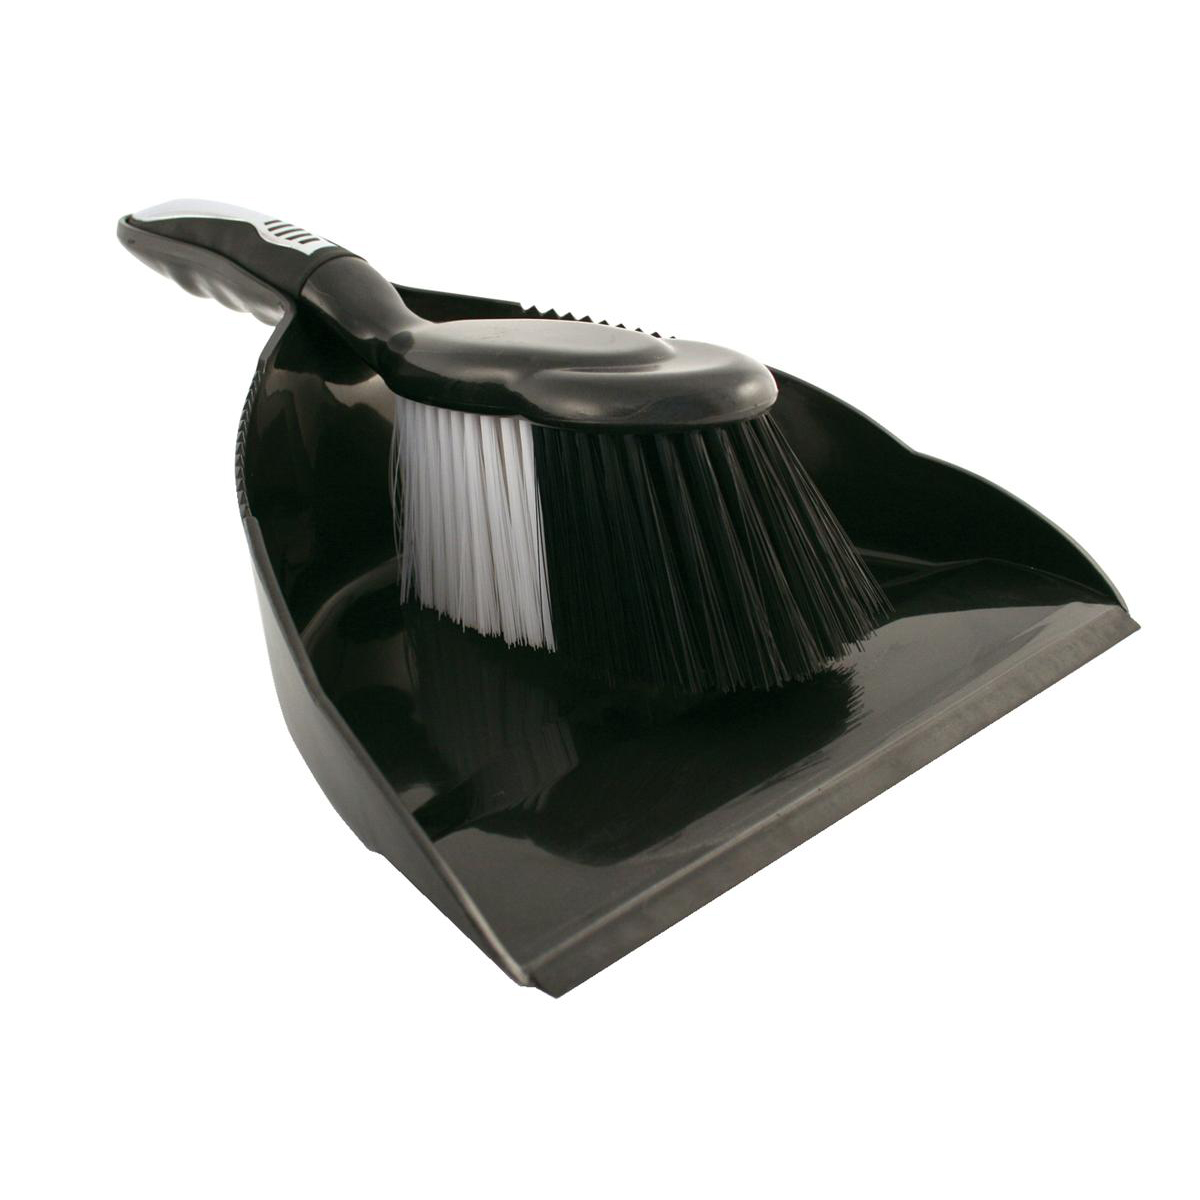 Brushes & Brooms Bentley Dustpan and Brush Set Black and Chrome Ref HL8001/G [SET]